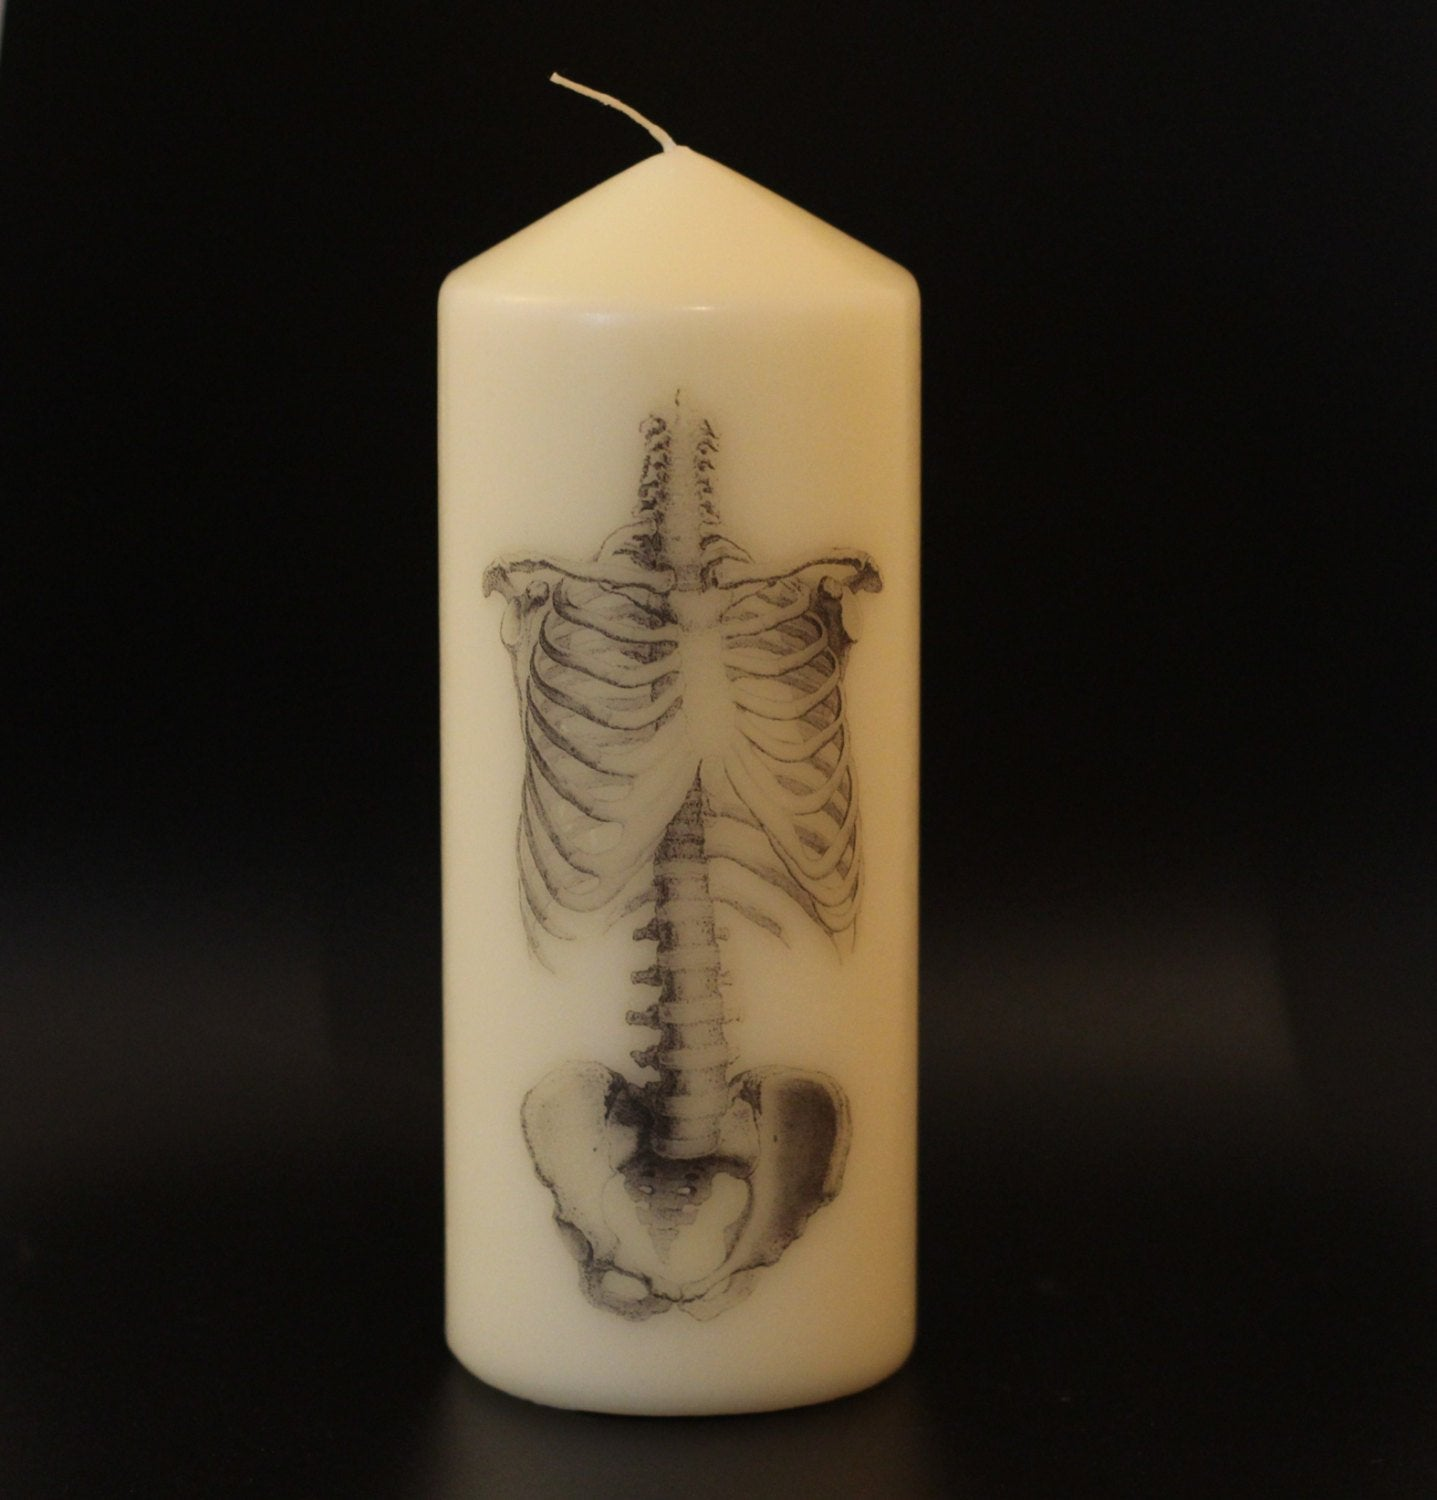 Skeleton - Pillar Candle - Anatomical Decor - ByCandlelight27